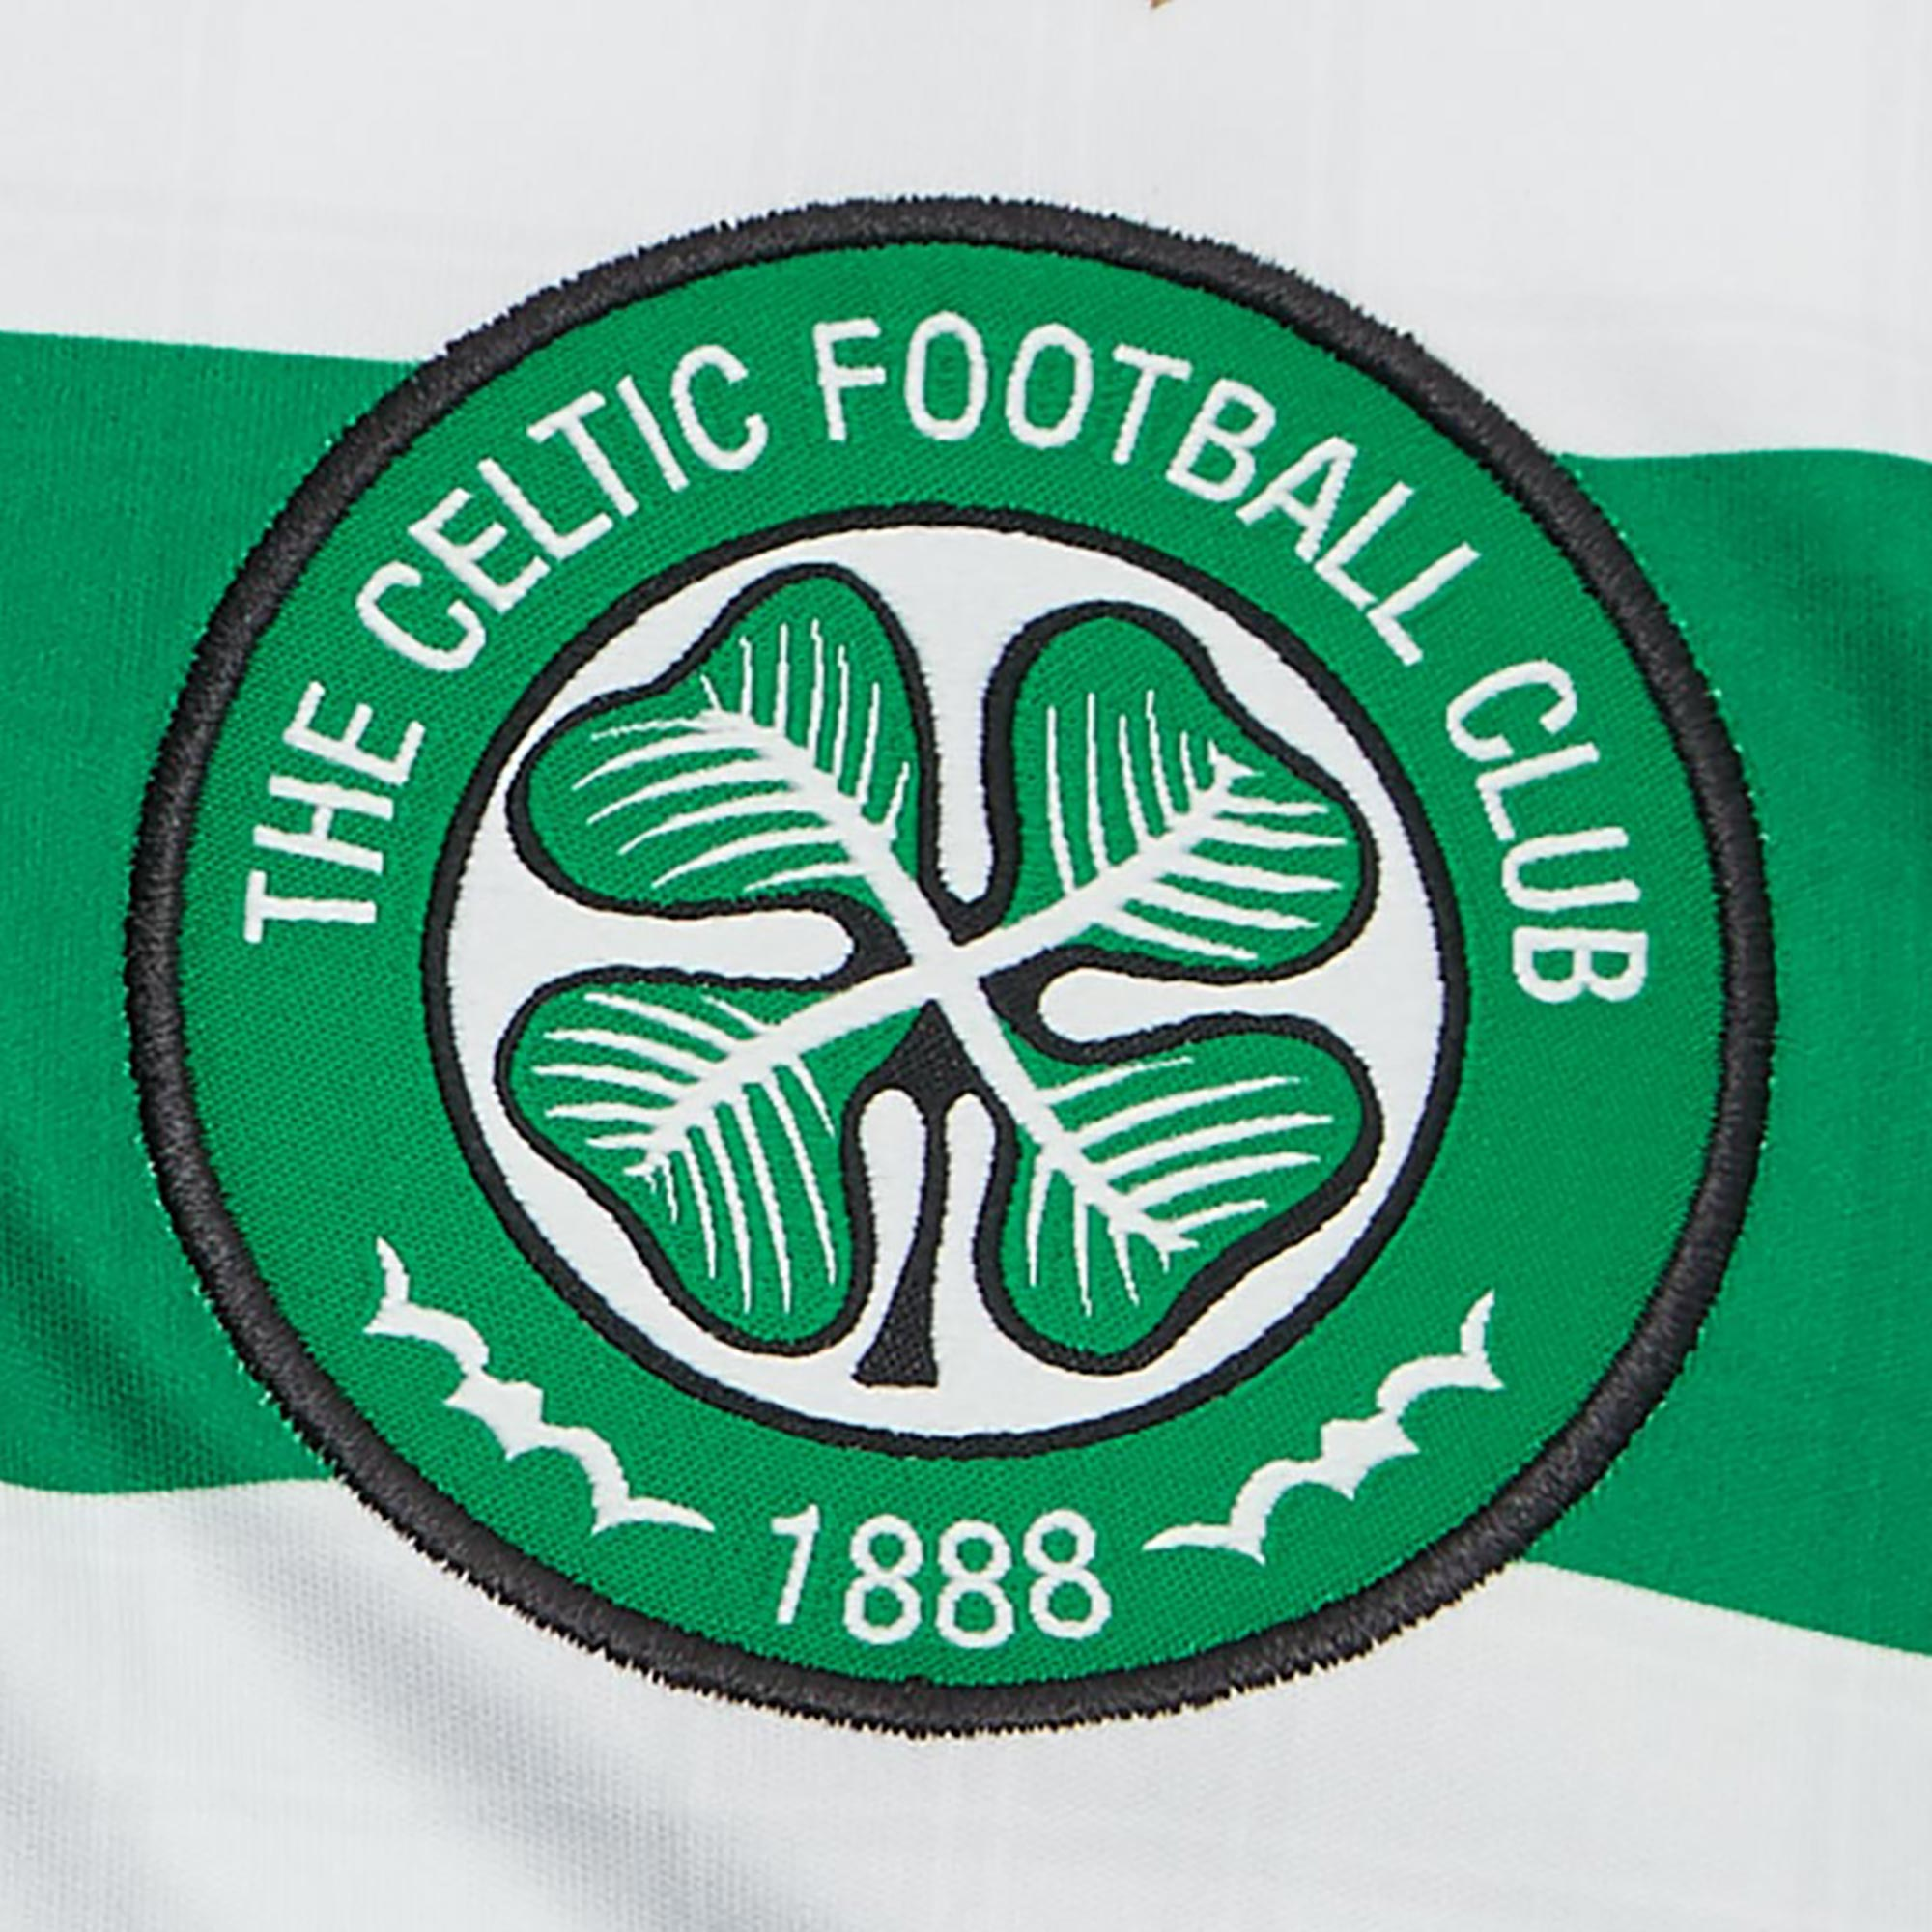 hight resolution of details about celtic home socks 2018 19 kids football sports